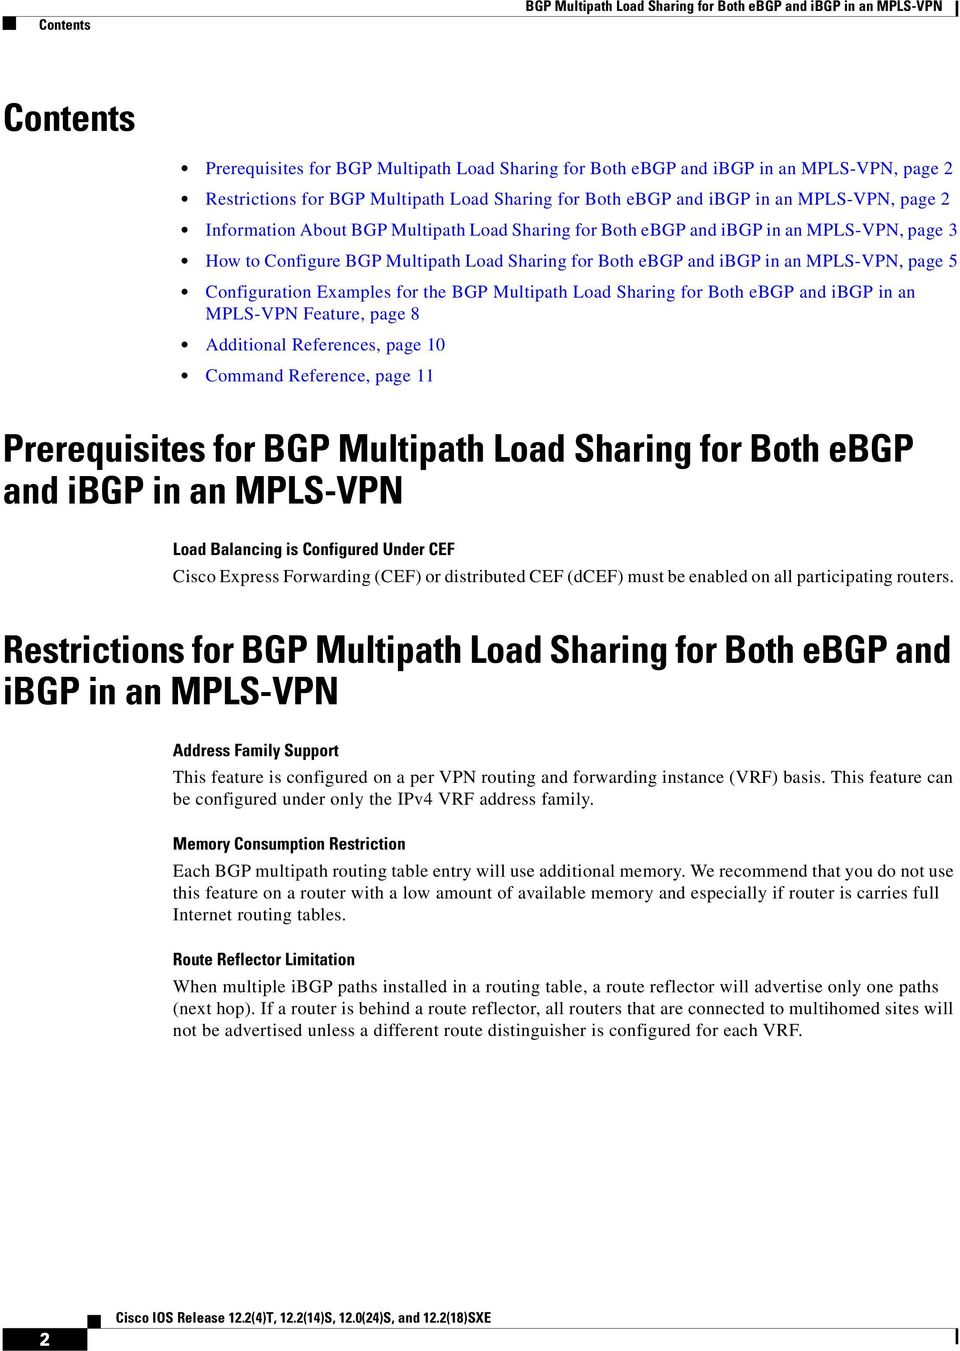 Sharing for Both ebgp and ibgp in an MPLS-VPN, page 5 Configuration Examples for the BGP Multipath Load Sharing for Both ebgp and ibgp in an MPLS-VPN Feature, page 8 Additional References, page 10